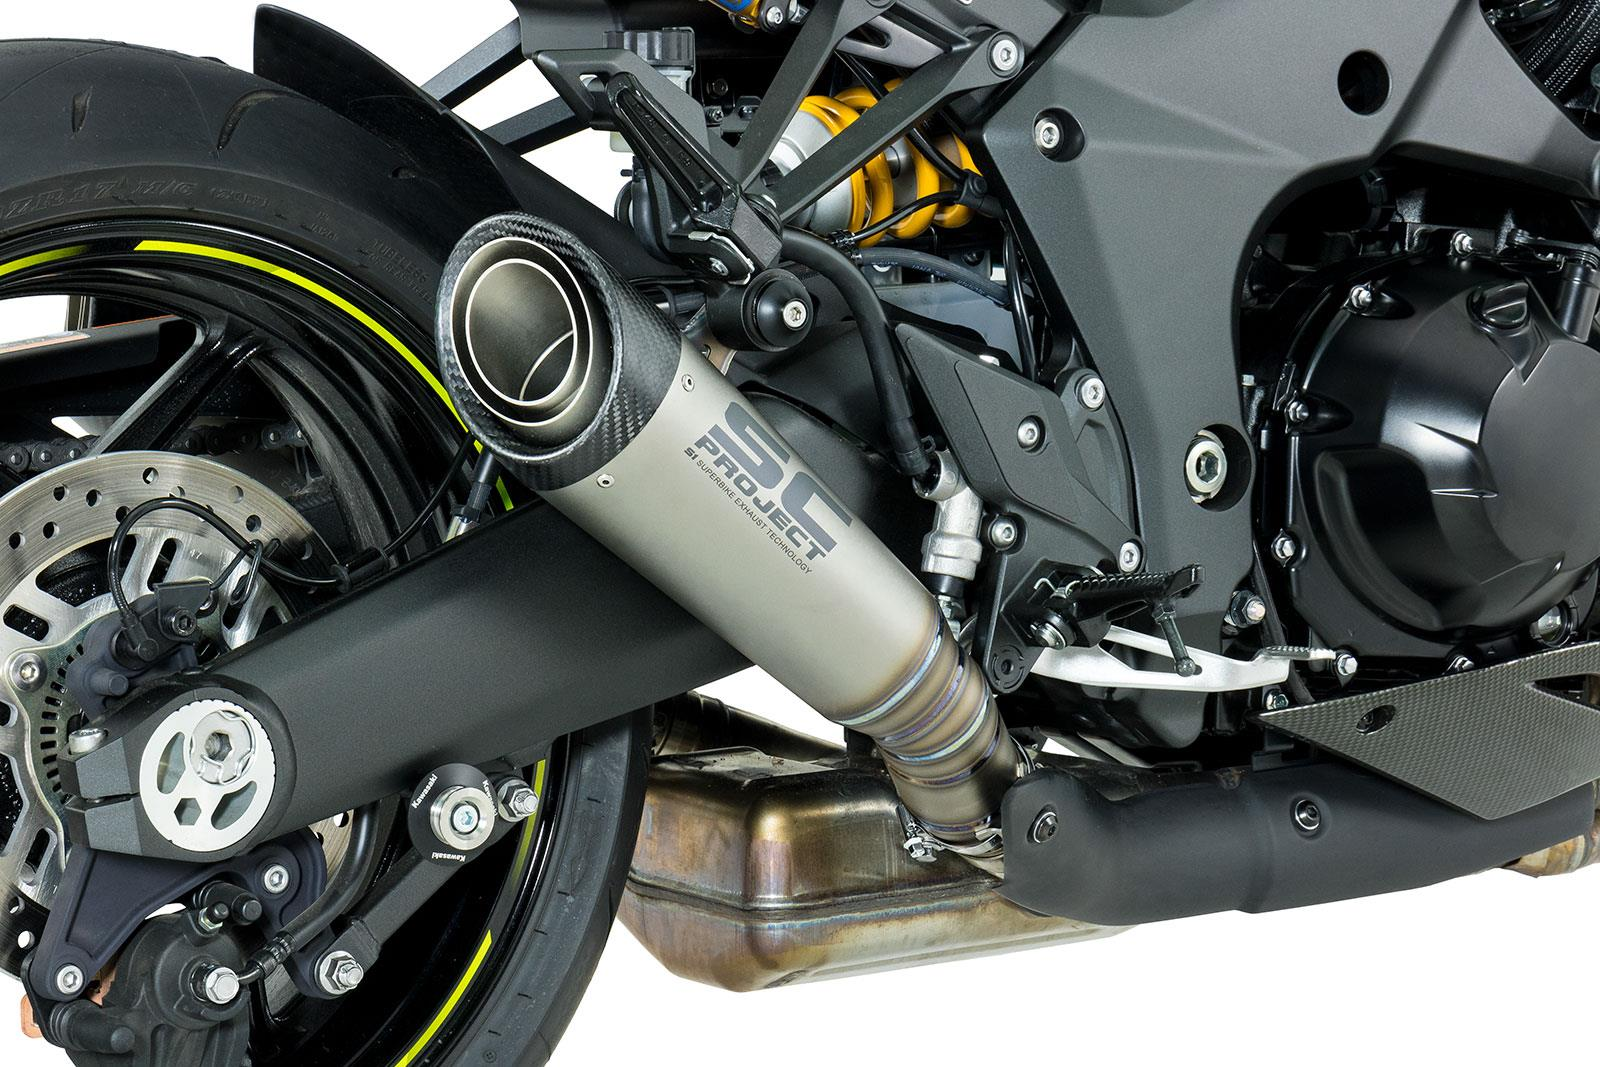 Sc Project Pipe Up With New Silencers Mcn